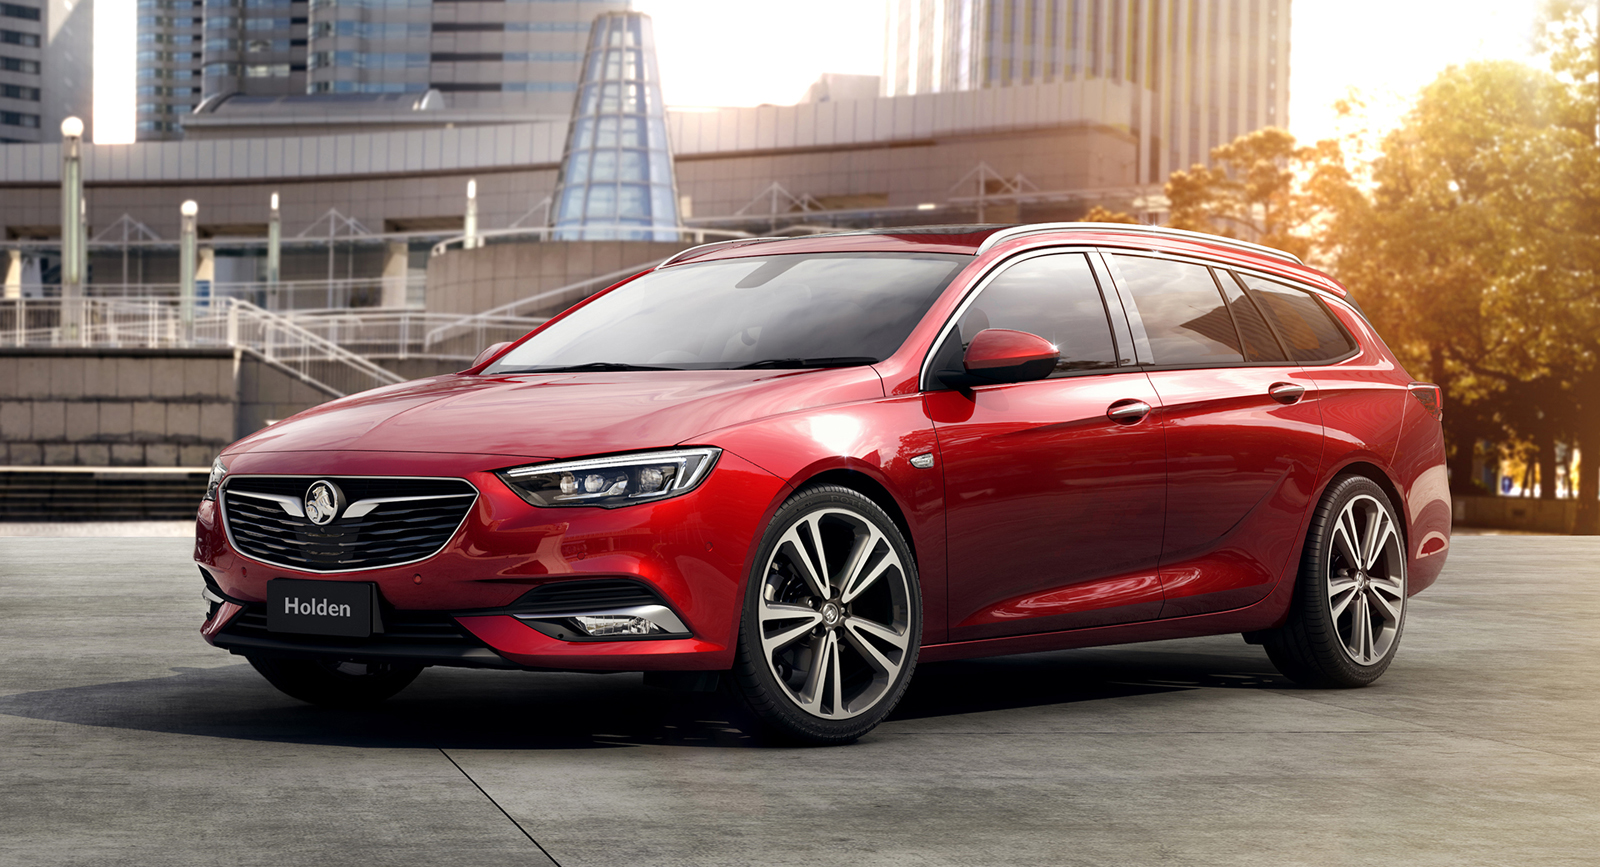 opel insignia sports tourer officially stretches its roof from geneva to markets worldwide. Black Bedroom Furniture Sets. Home Design Ideas